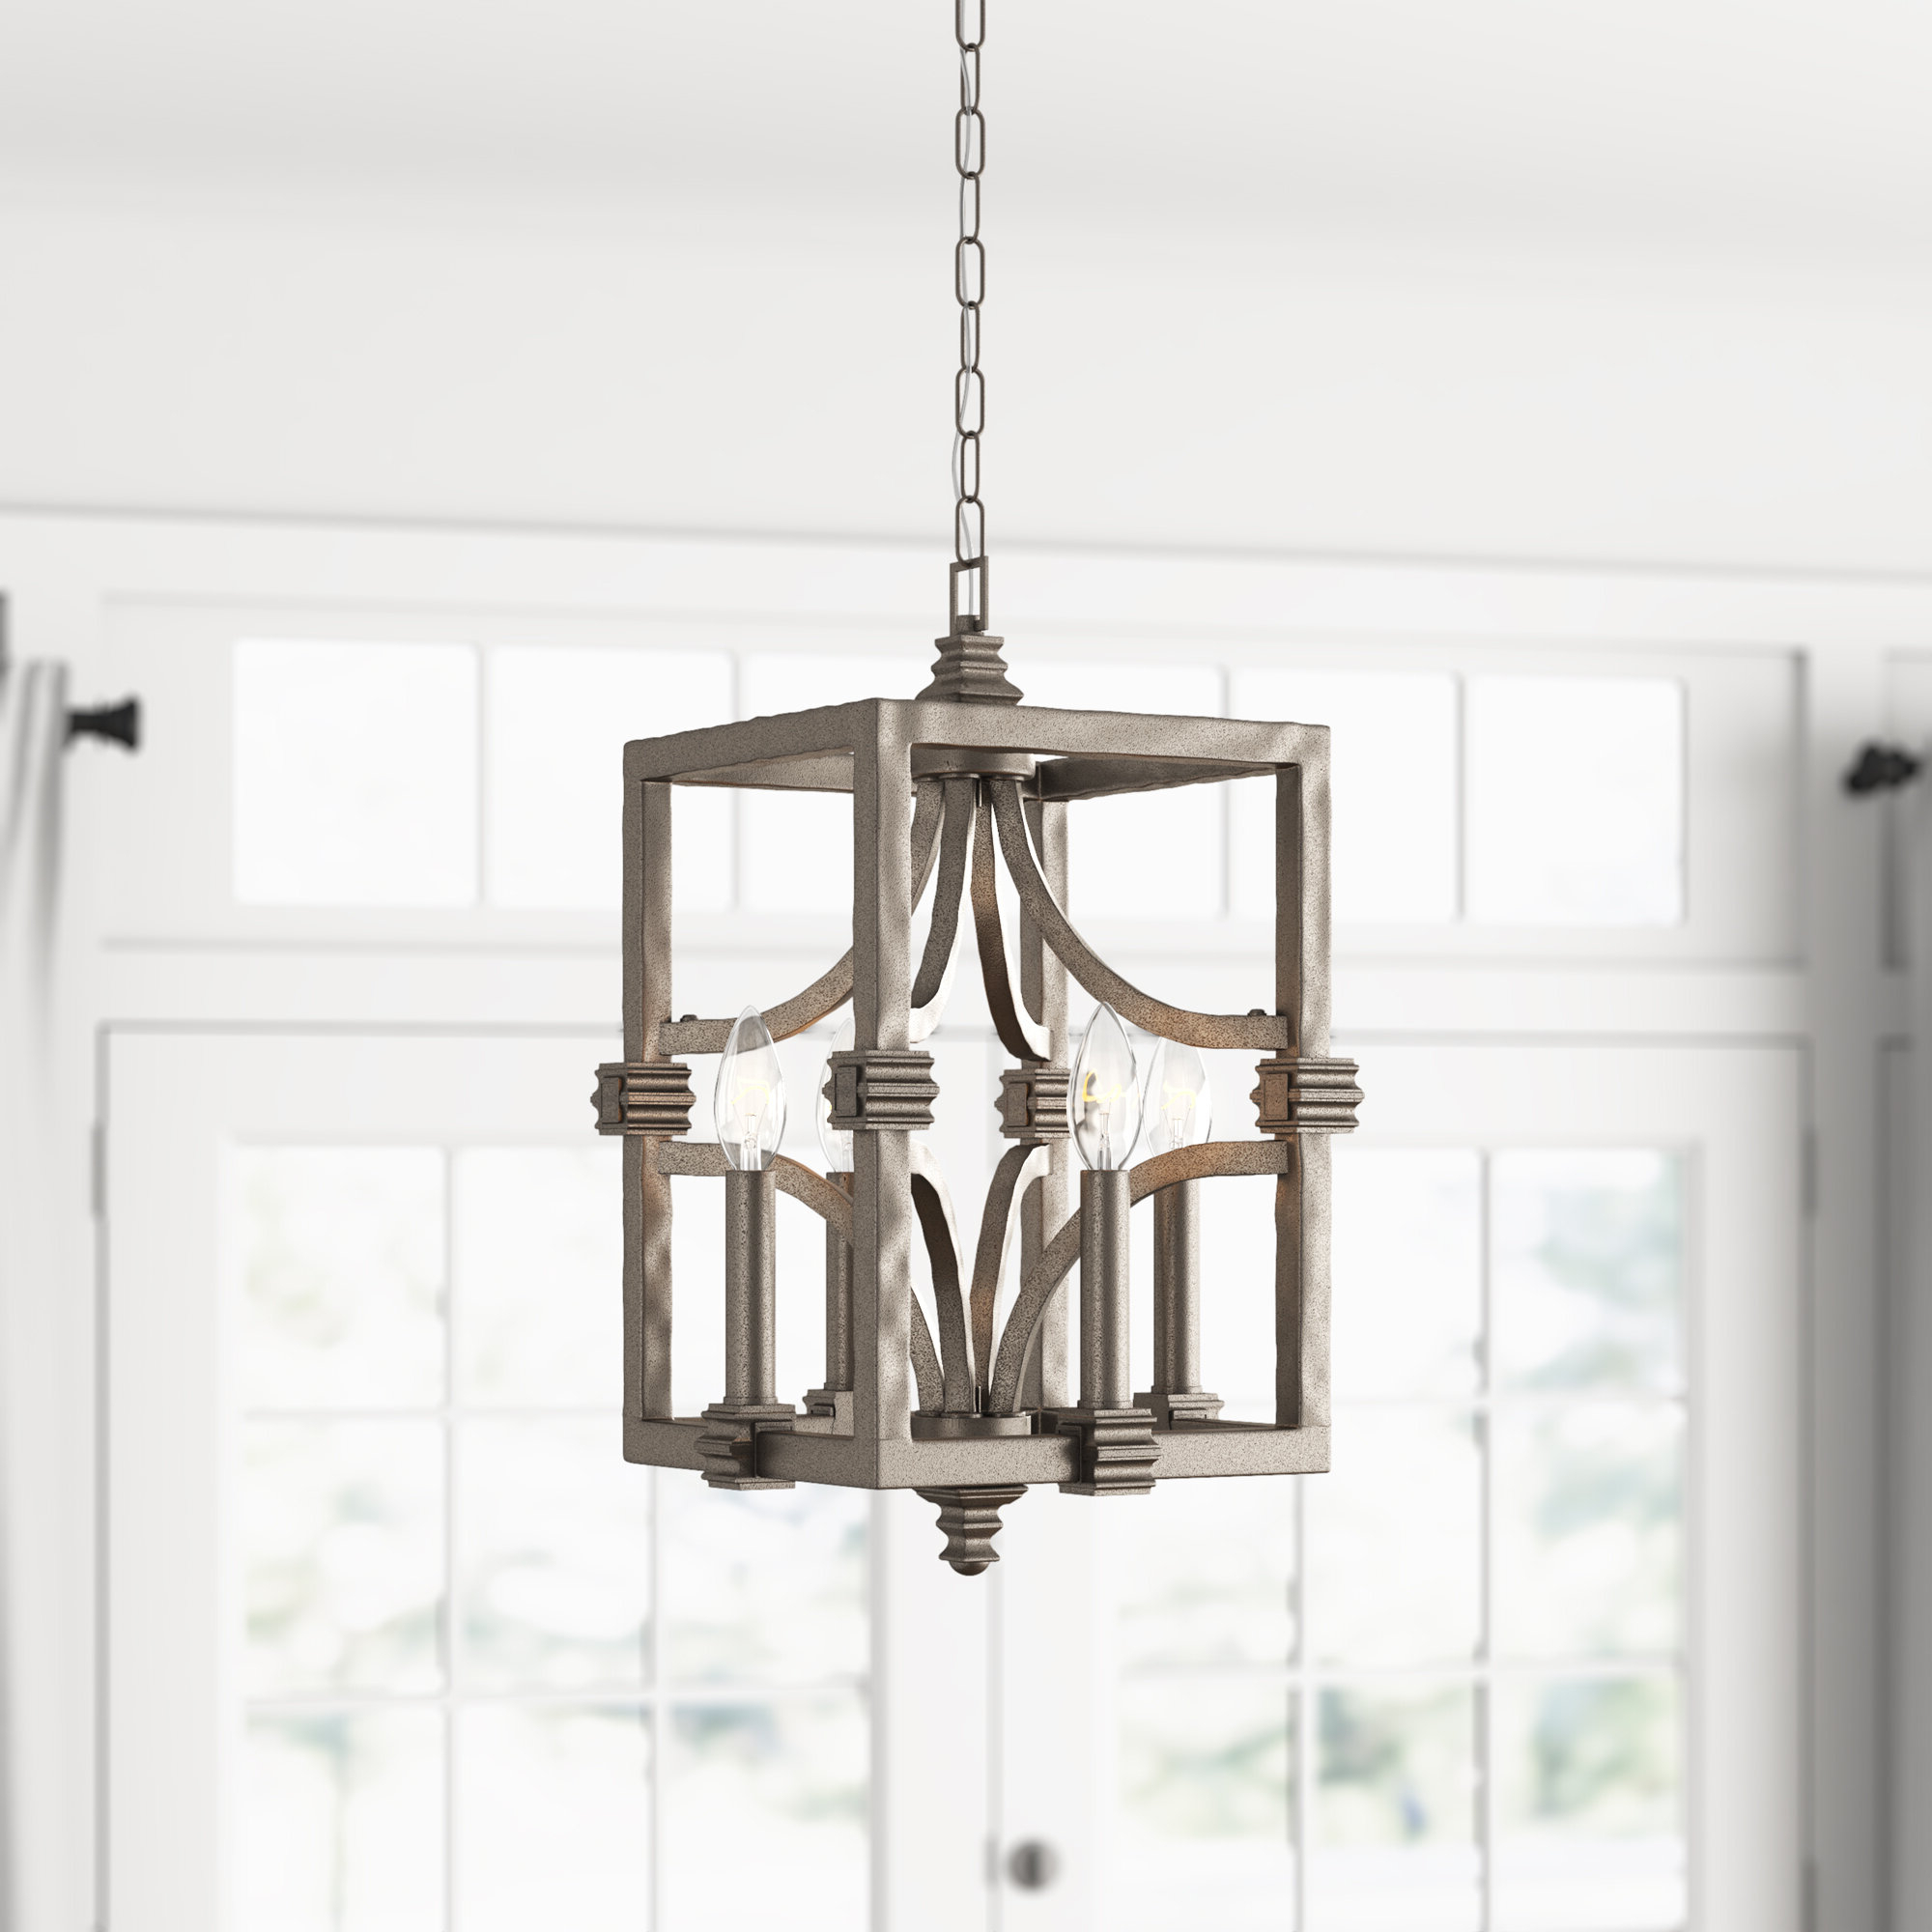 Freeburg 4 Light Lantern Square / Rectangle Pendant Intended For Latest Kierra 4 Light Unique / Statement Chandeliers (View 7 of 25)